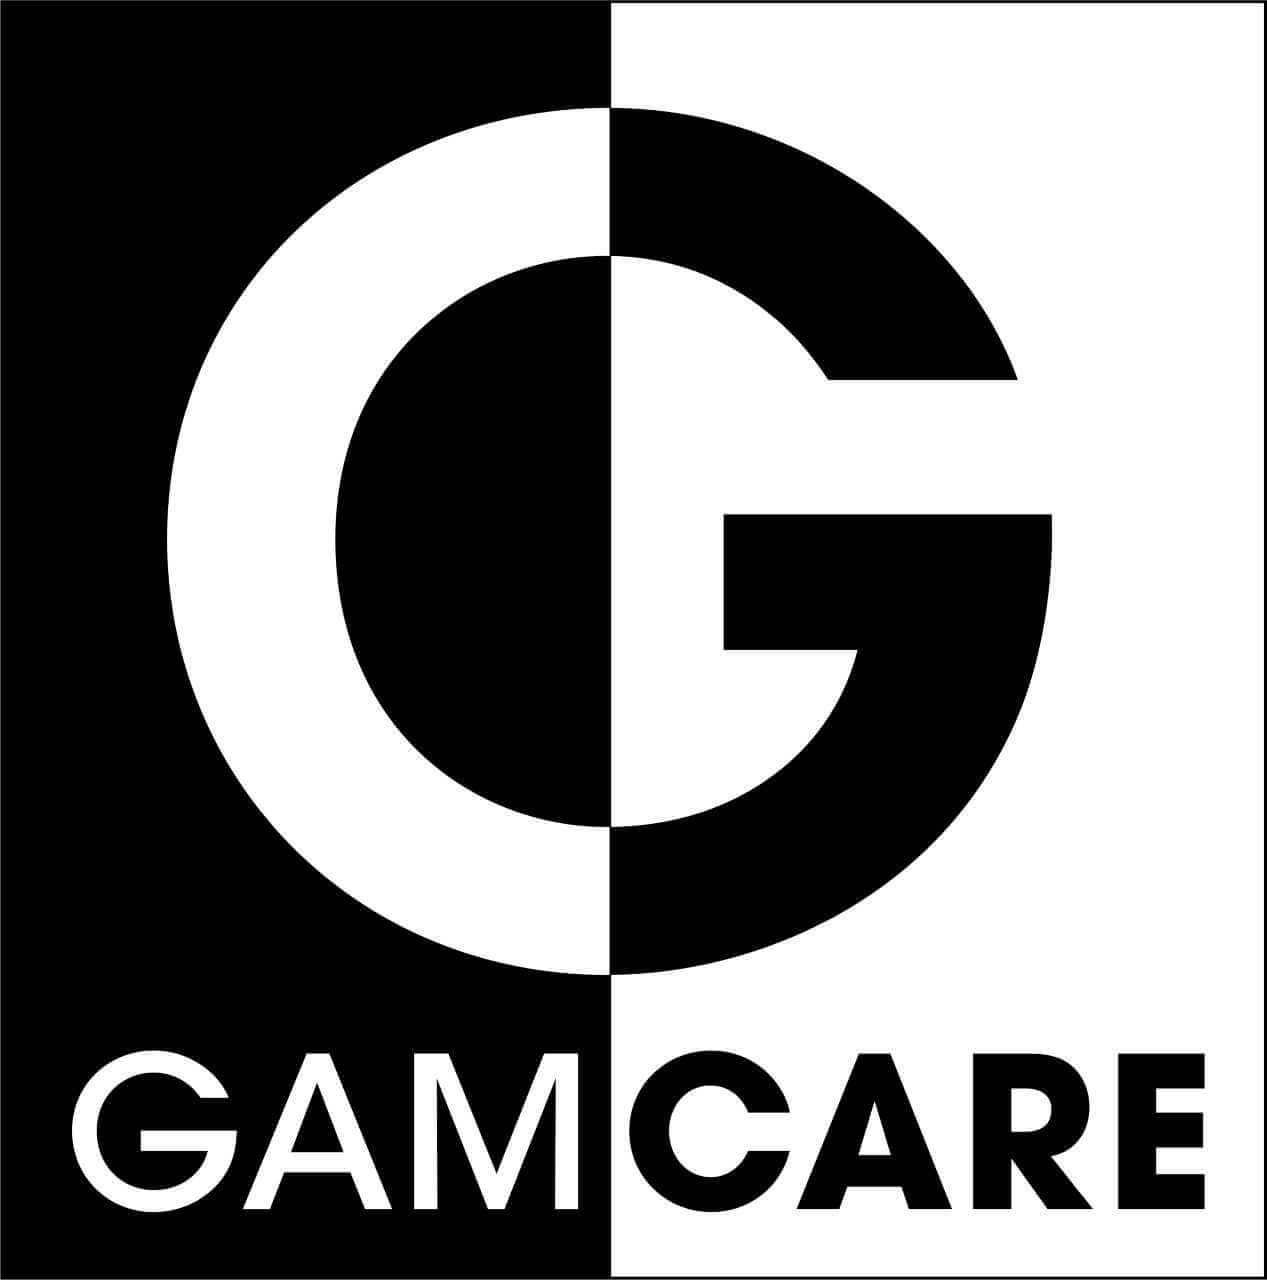 An image of the GamCare logo